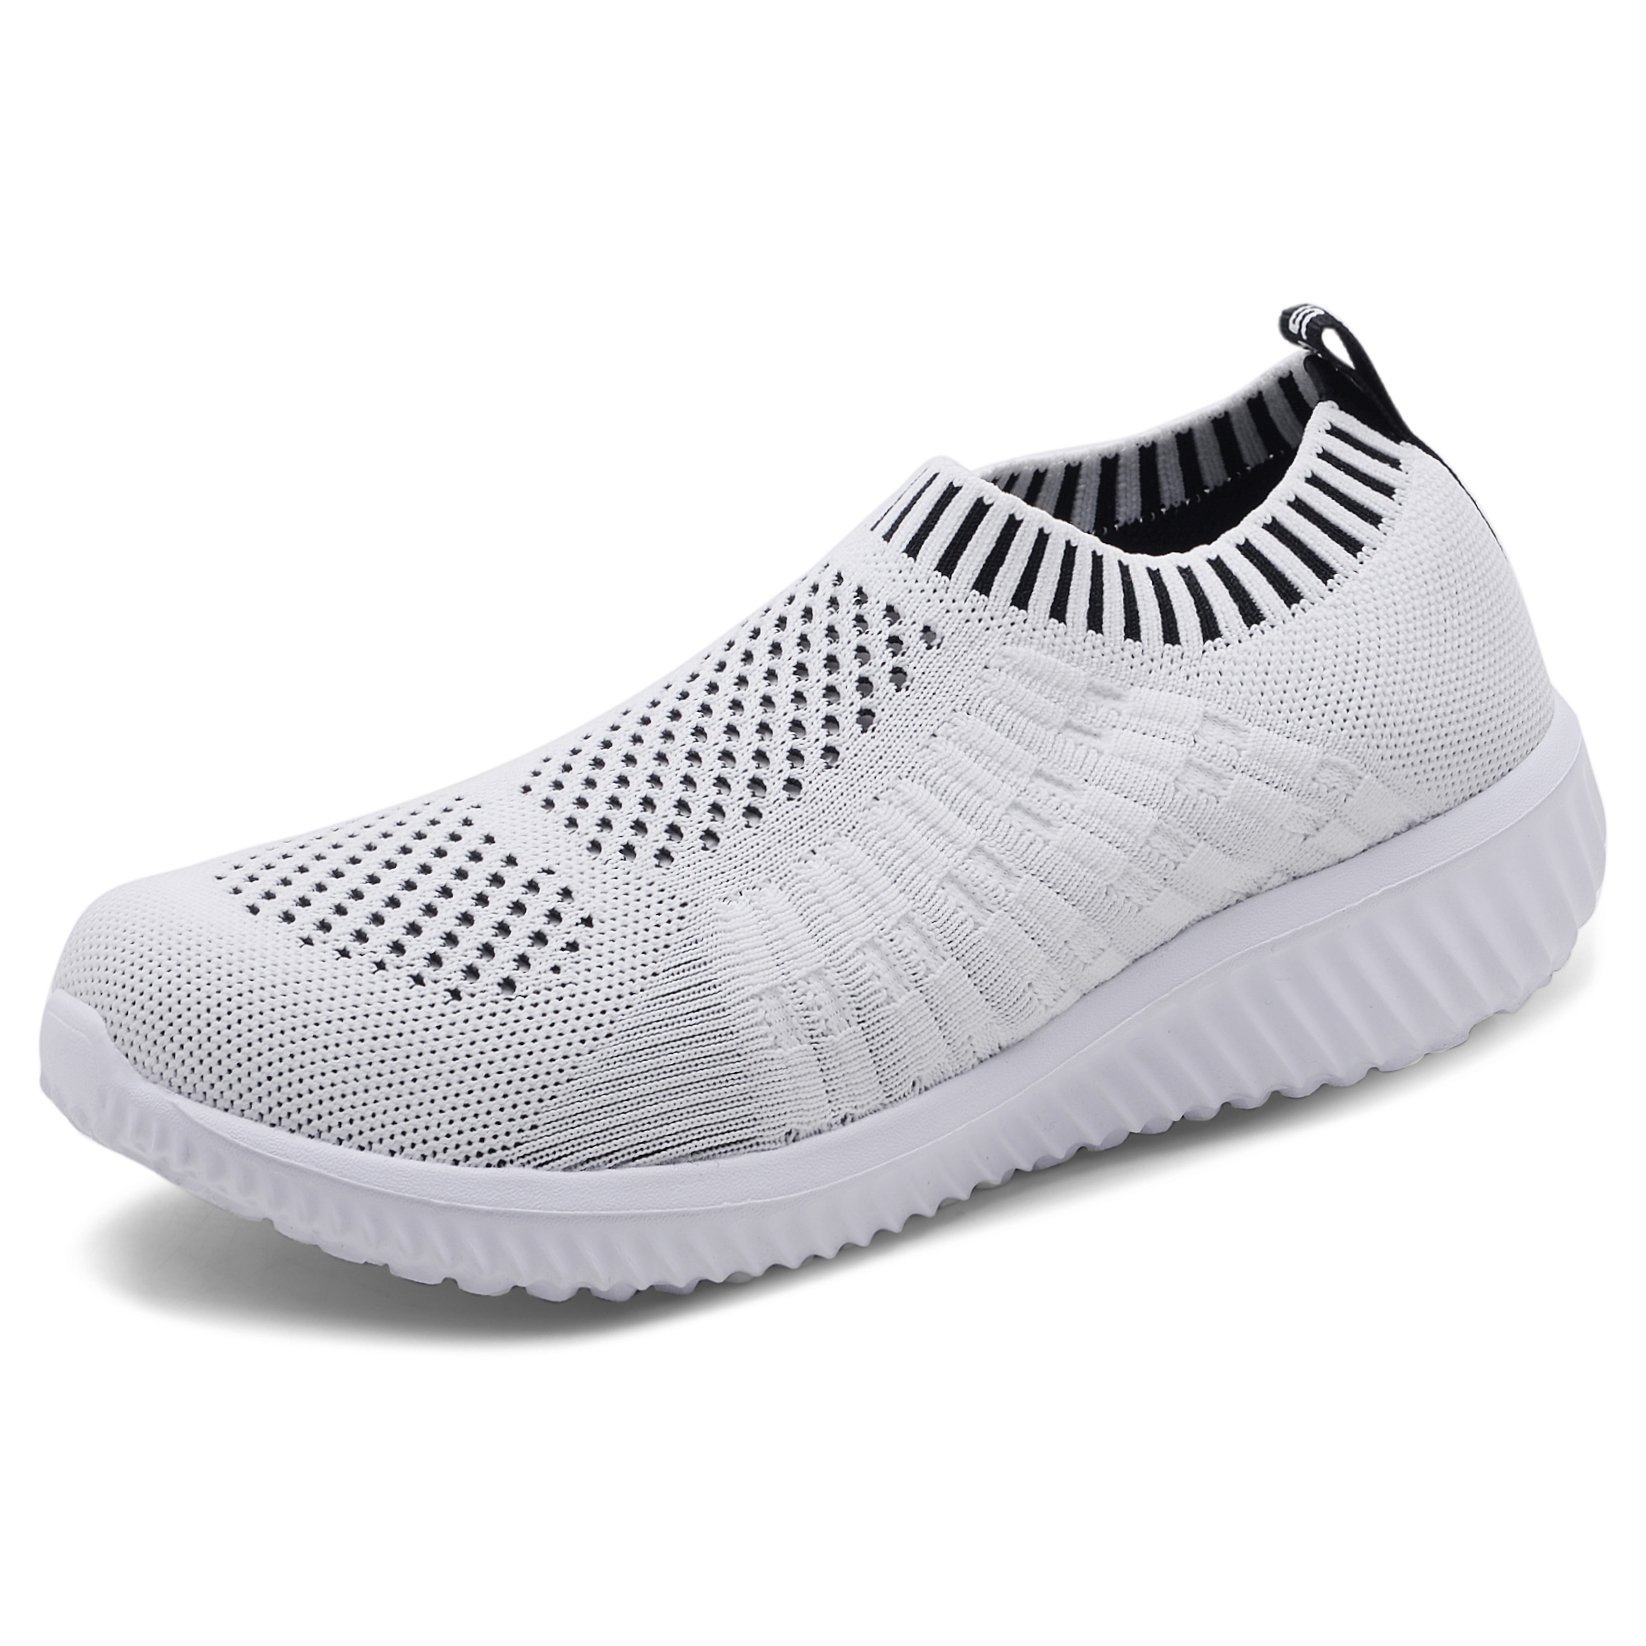 TIOSEBON Women's Athletic Shoes Casual Mesh Walking Sneakers - Breathable Running Shoes 8.5 US White New